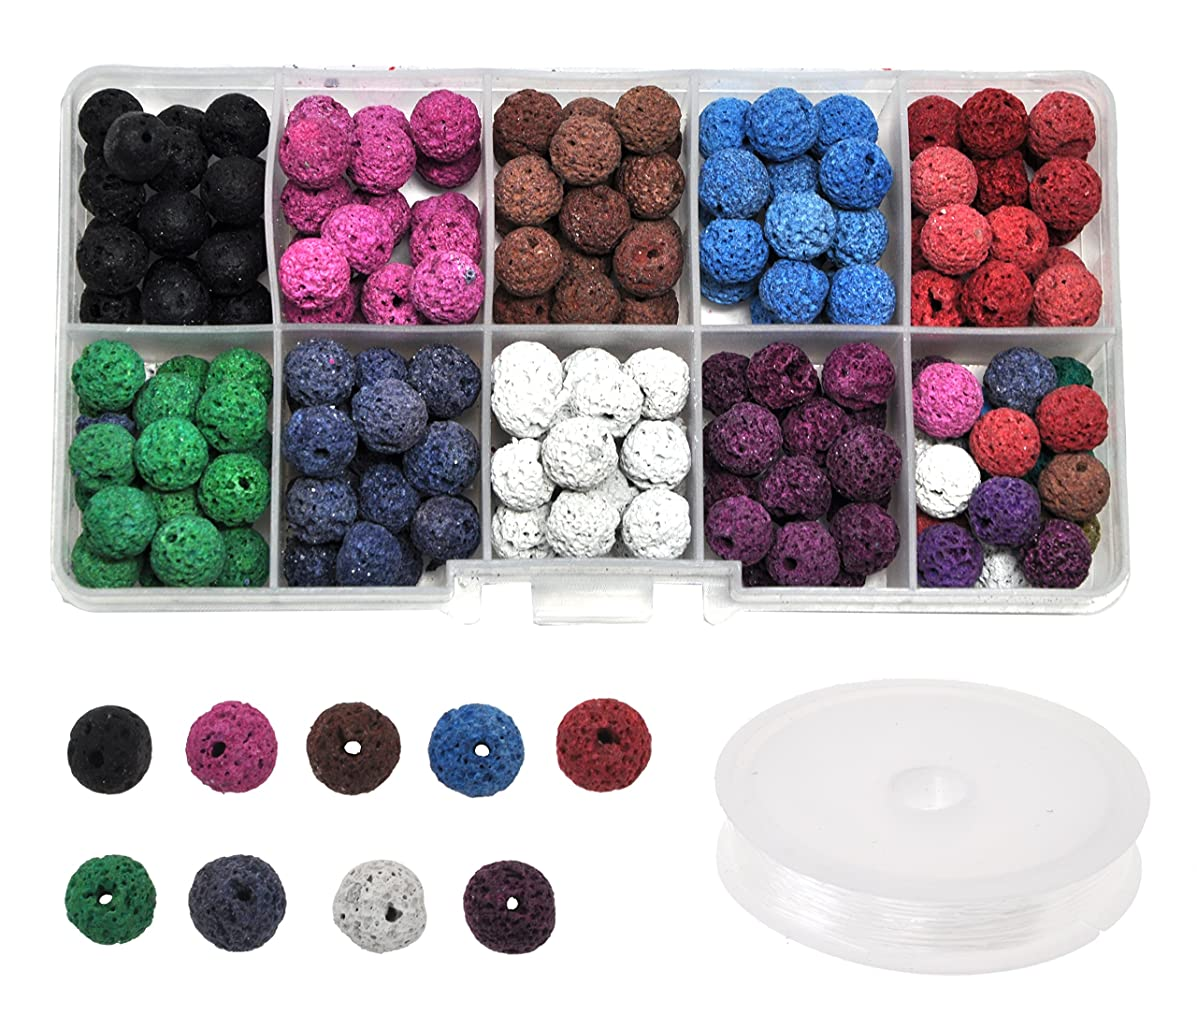 Mandala Crafts Loose Volcanic Rock Lava Bead Kit for Making Essential Oil Diffuser Jewelry, Necklaces, Bracelets, and Rosary Malas (8mm, Unwaxed Colored Stones)